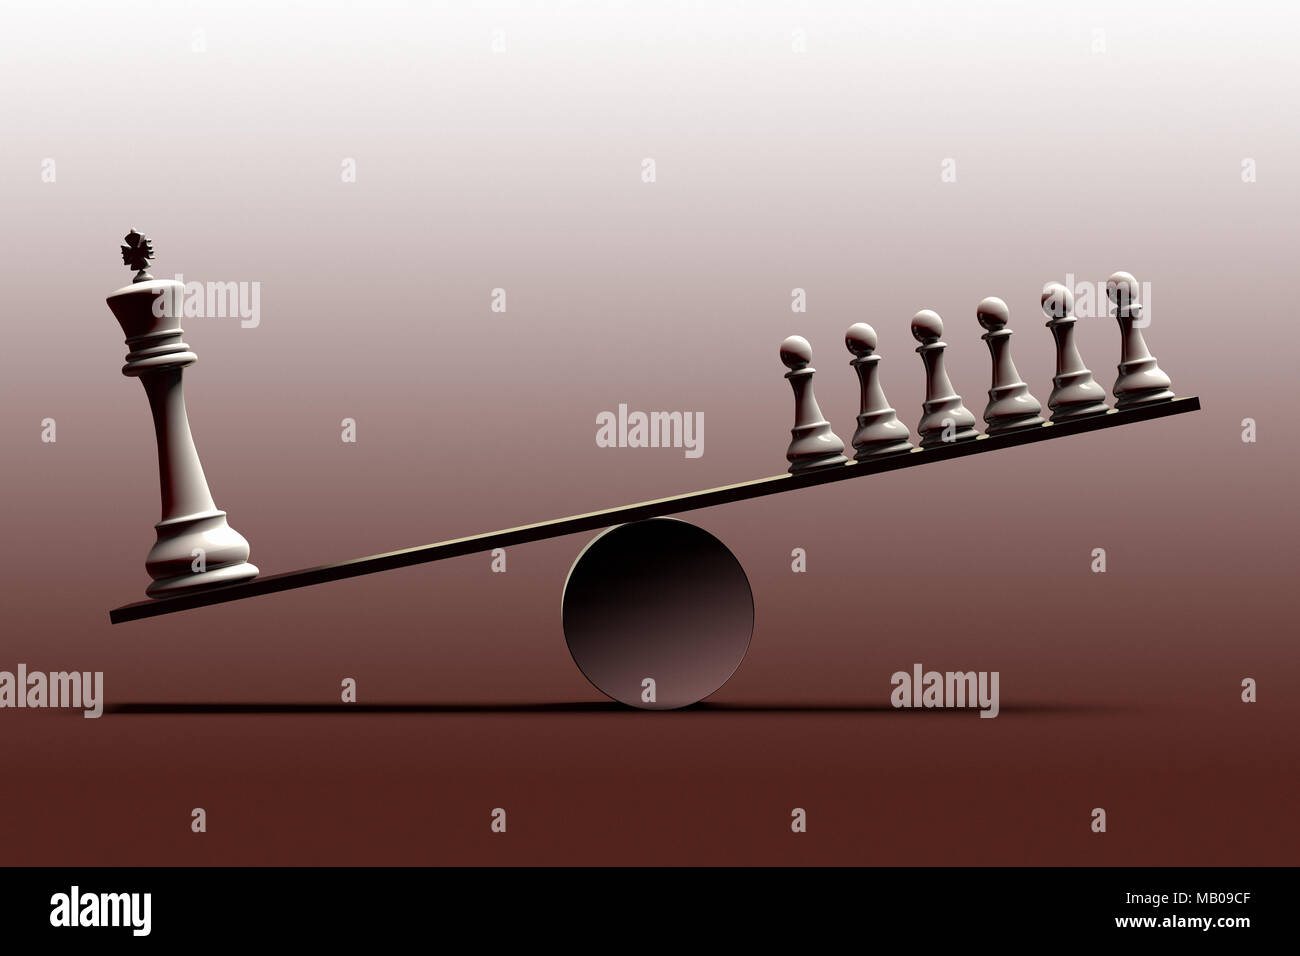 3D rendering of a onceptual representation of social inequality and the imbalance between social classes represented with chess pieces - Stock Image